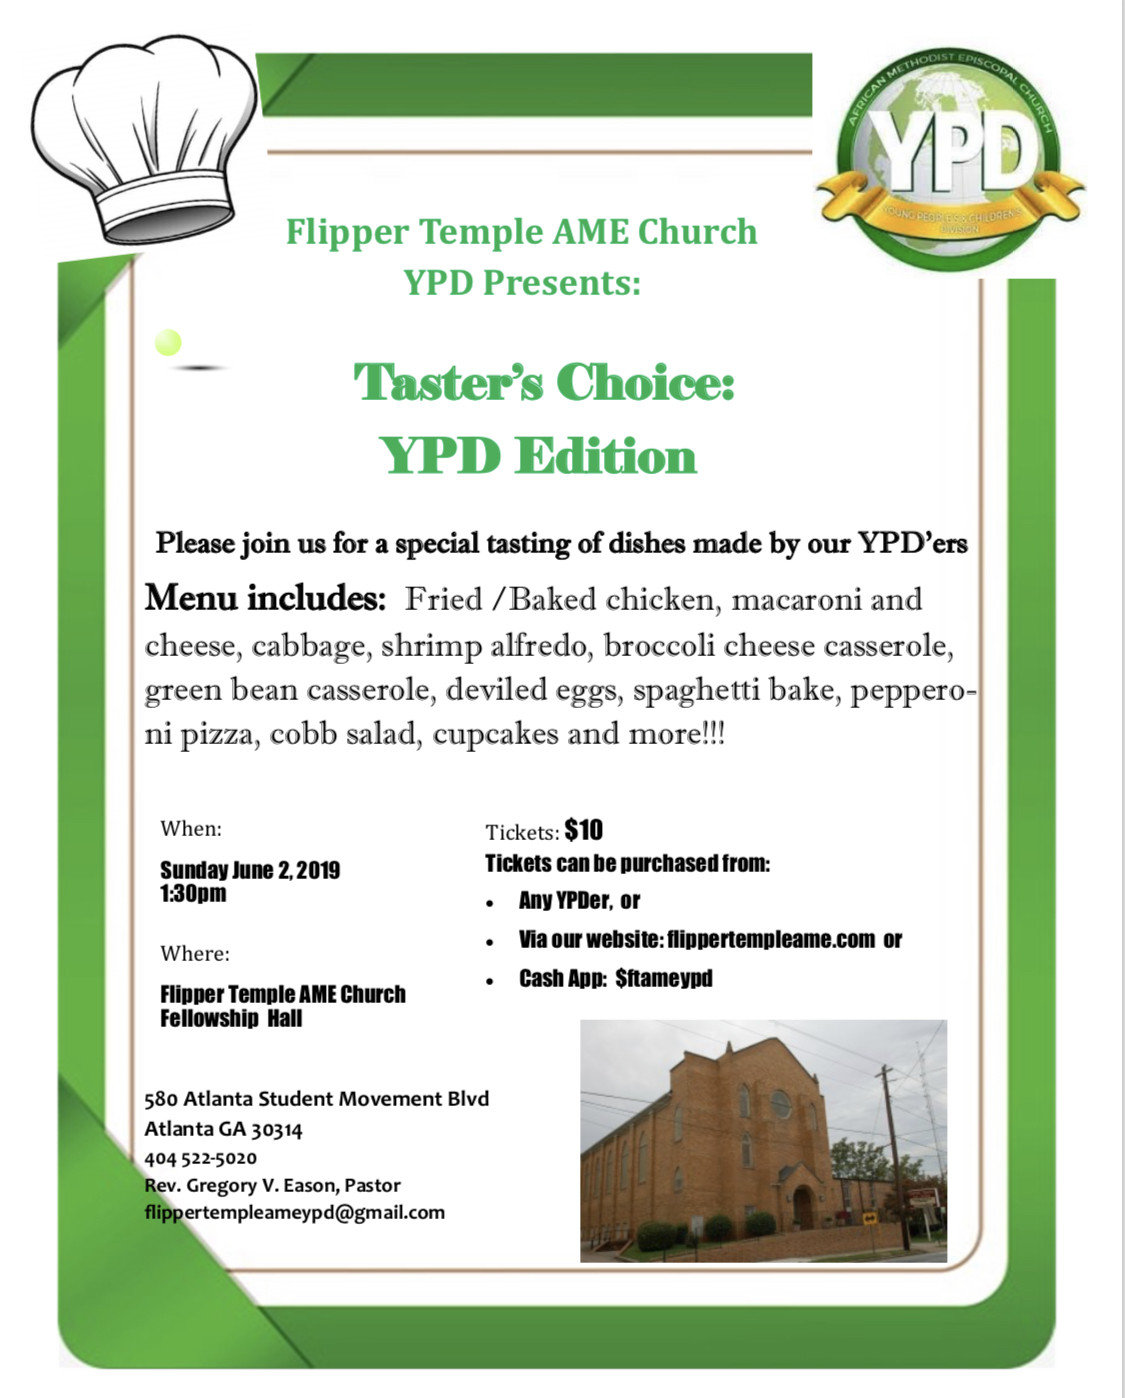 Taster's Choice: YPD Edition